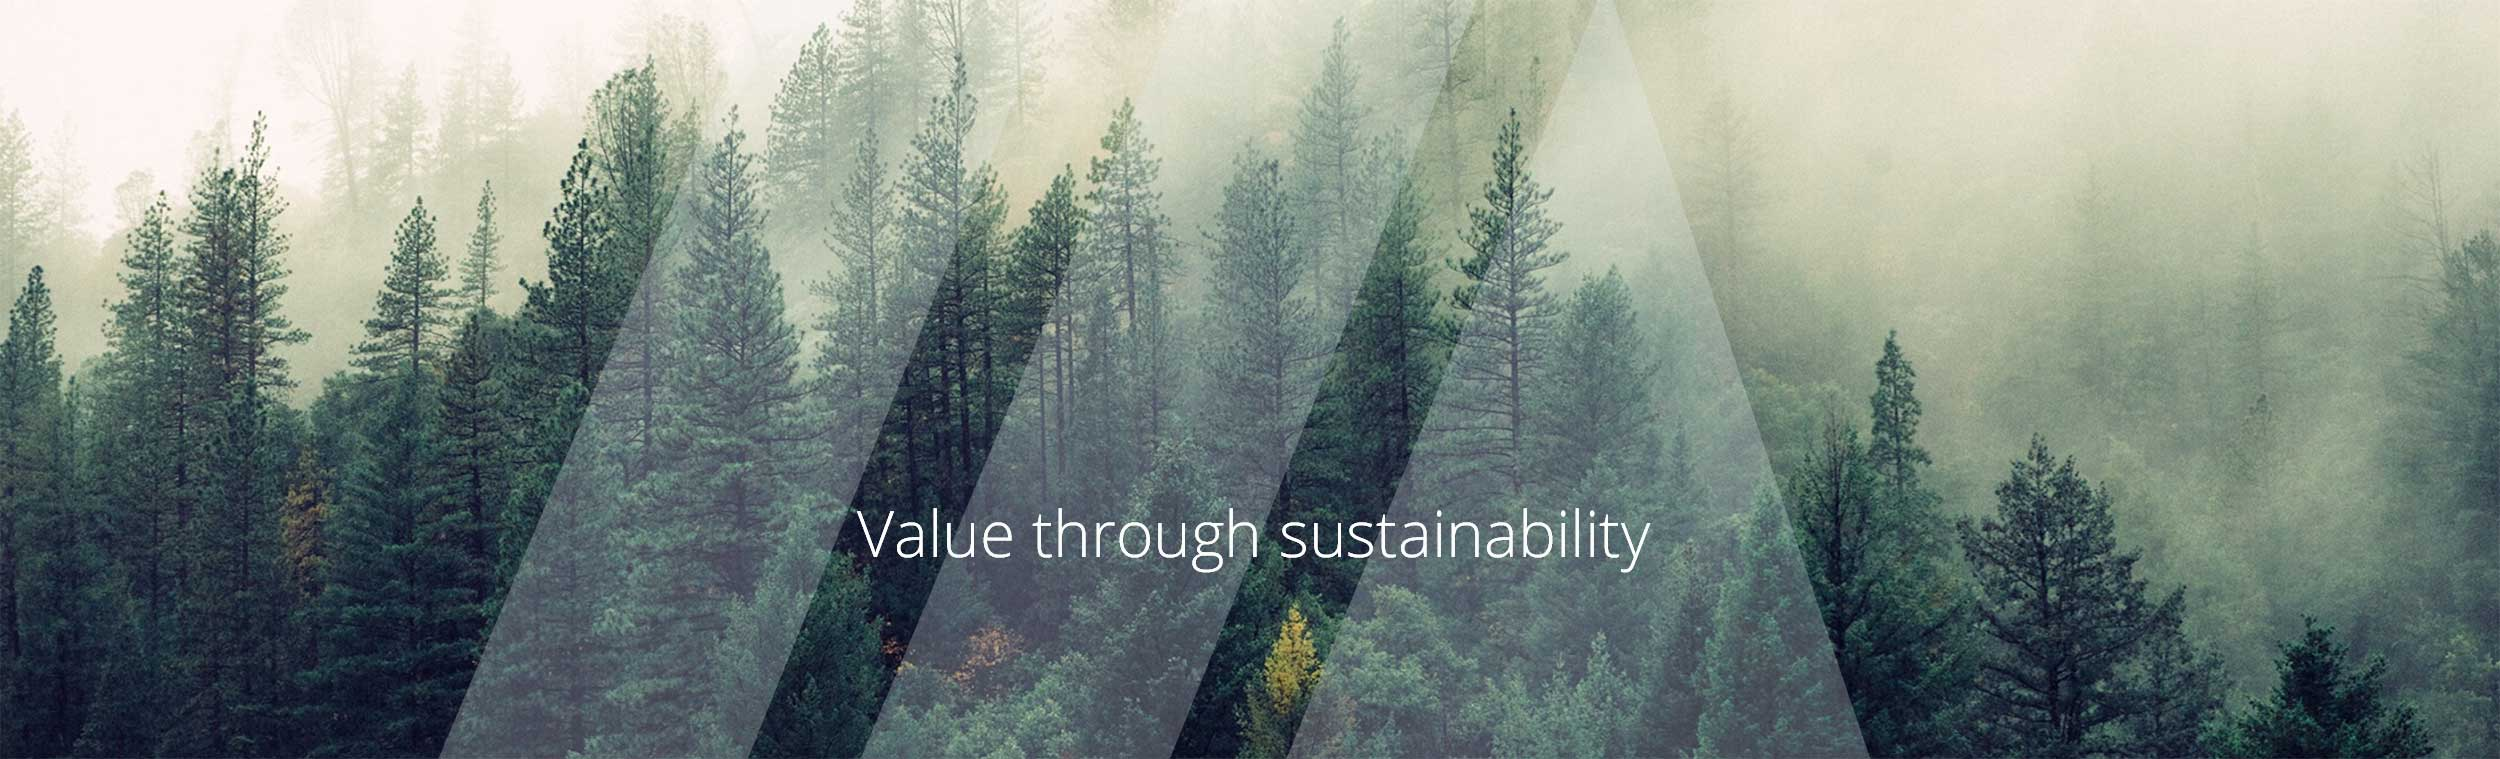 Value through sustainability